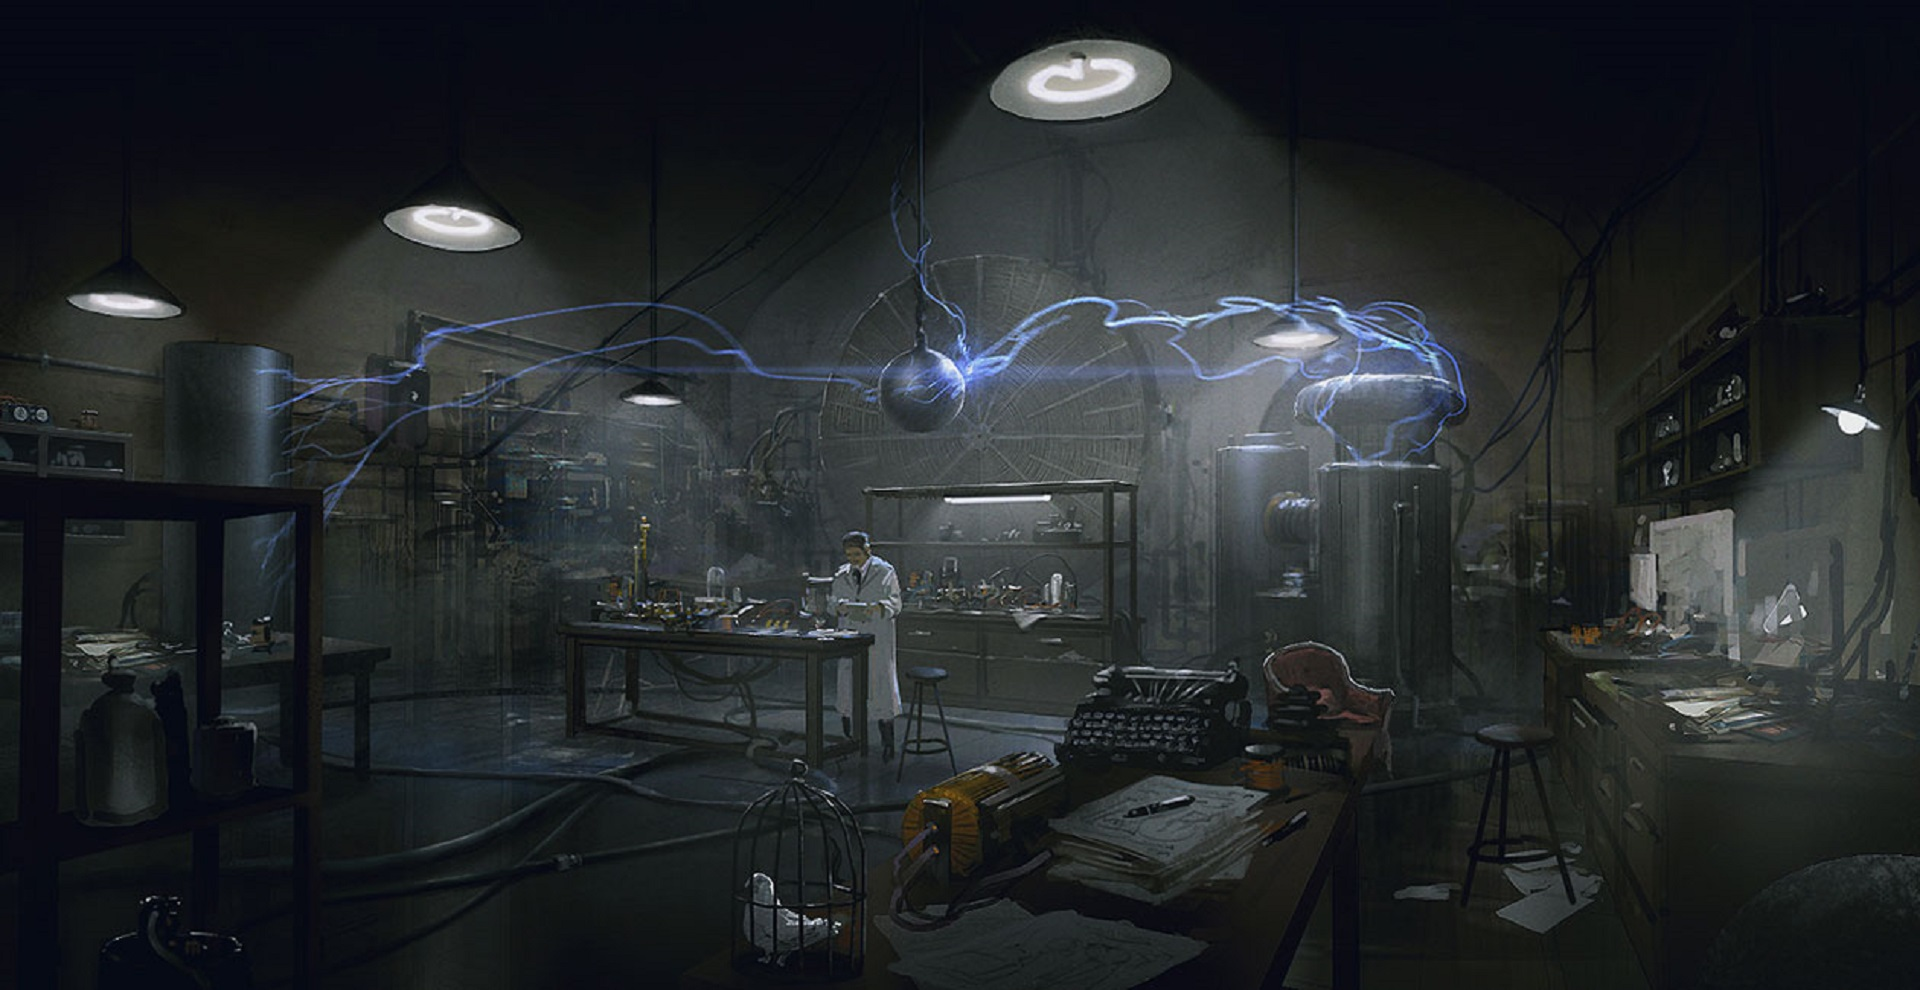 The Order 1886 Wallpaper Tesla Lab Coil Experiment Concept Artwork PS4